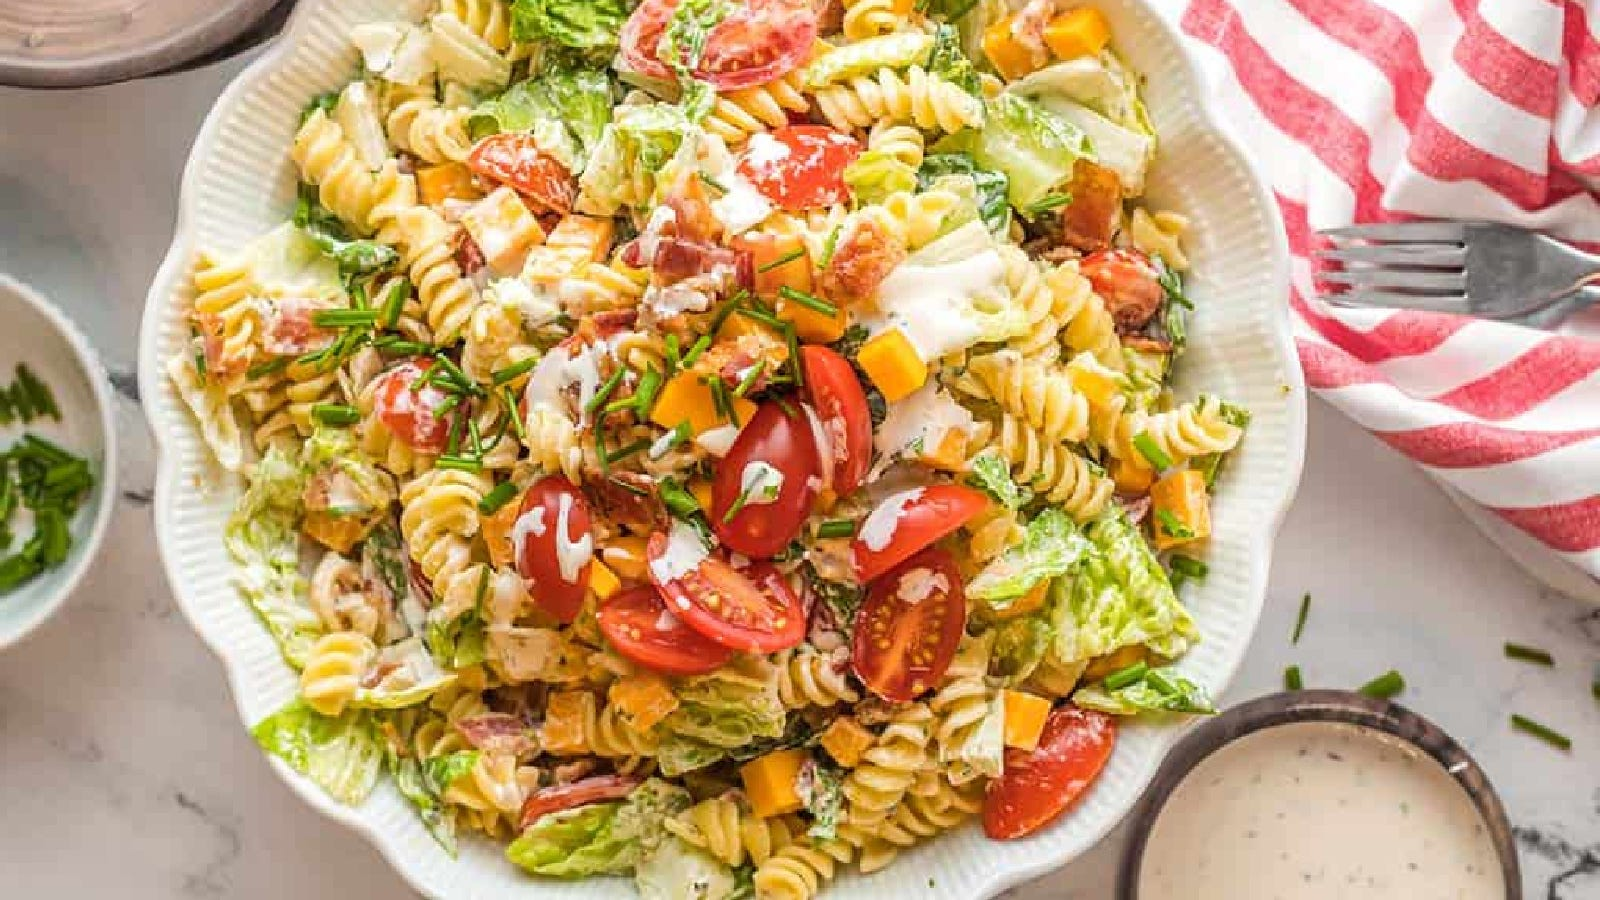 A large serving blow filled with BLT pasta salad, topped with fresh cherry tomatoes and chopped chives.